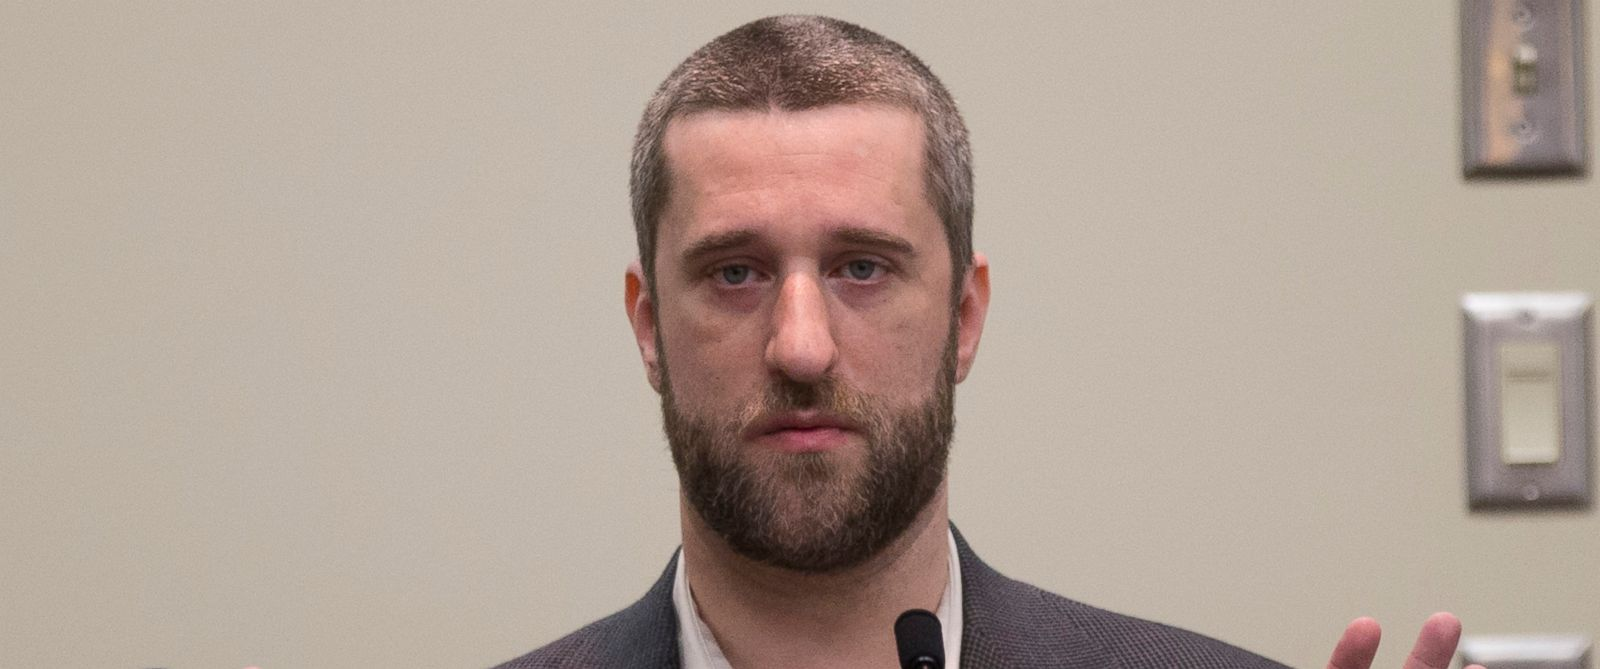 dustin diamonddustin diamond now, dustin diamond, dustin diamond net worth, dustin diamond net worth 2015, dustin diamond wife, dustin diamond screech, dustin diamond arrested, dustin diamond book, dustin diamond stabbing, dustin diamond jail, dustin diamond net worth 2014, dustin diamond 2014, dustin diamond girlfriend, dustin diamond knife